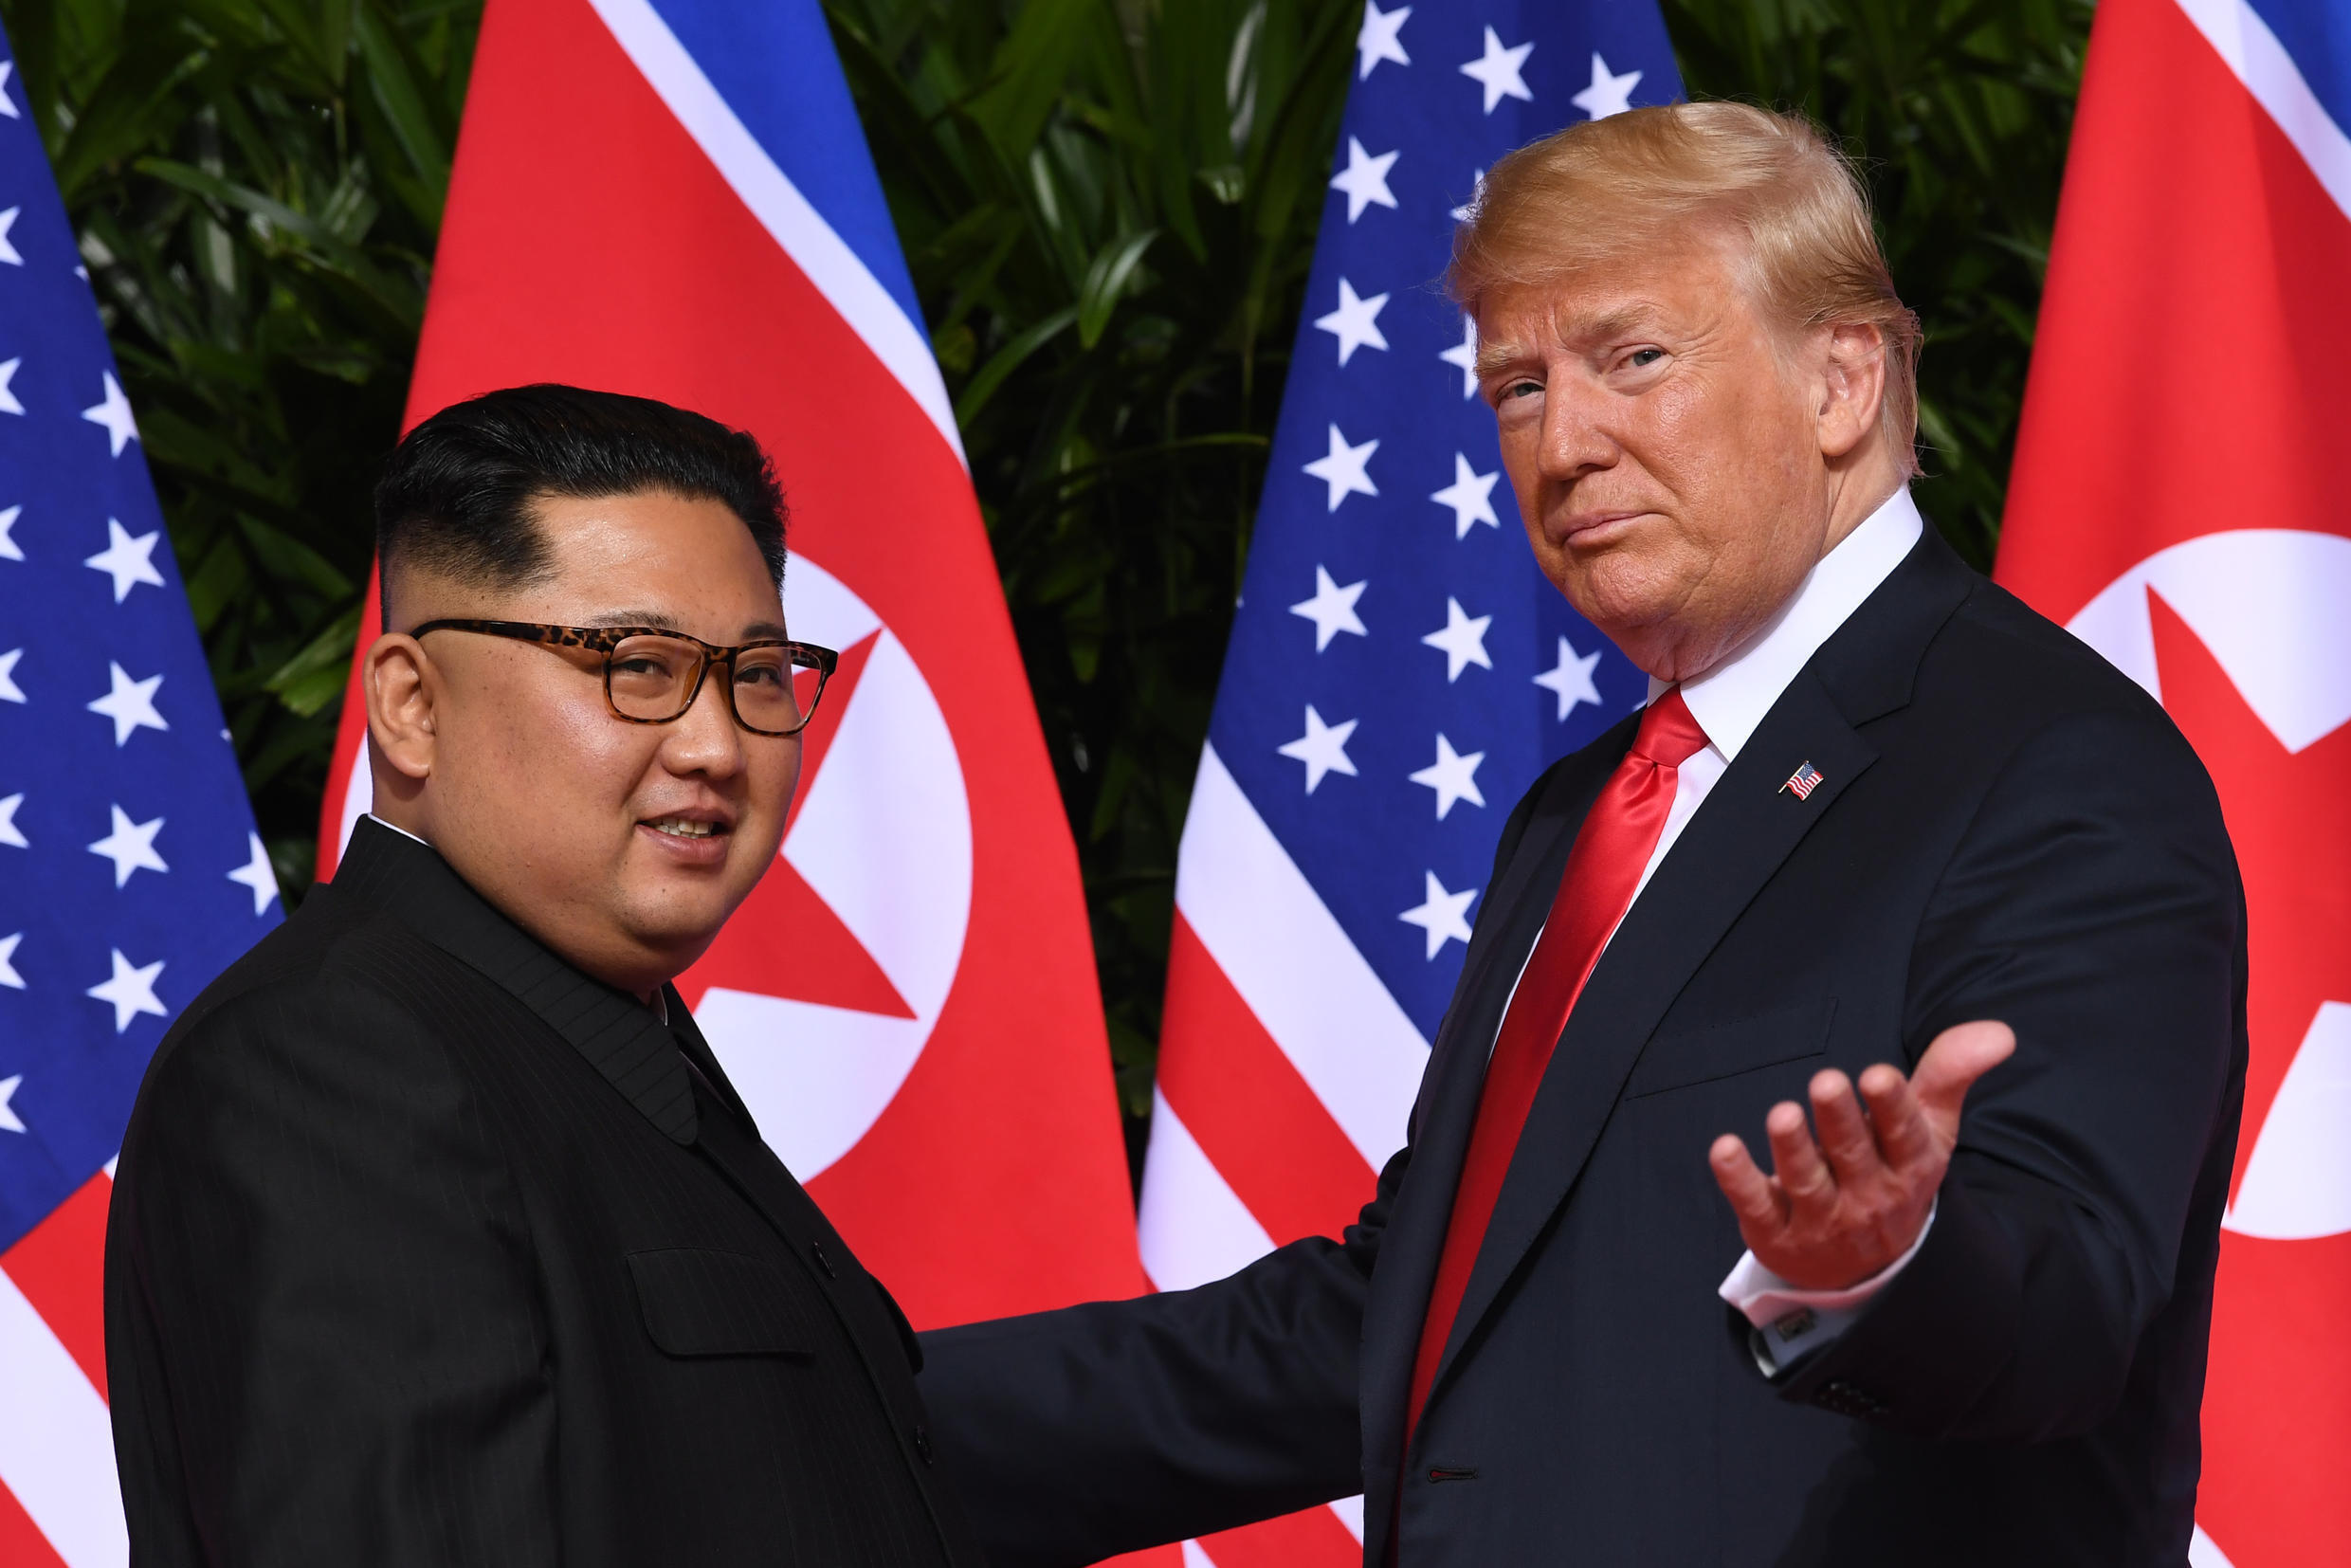 """US President Donald Trump (R) meets with North Korea's leader Kim Jong Un (L) at the start of their summit in Singapore on June 12, 2018 -- two years on, Pyongyang says any hopes for better ties have turned to feelings of """"despair"""""""